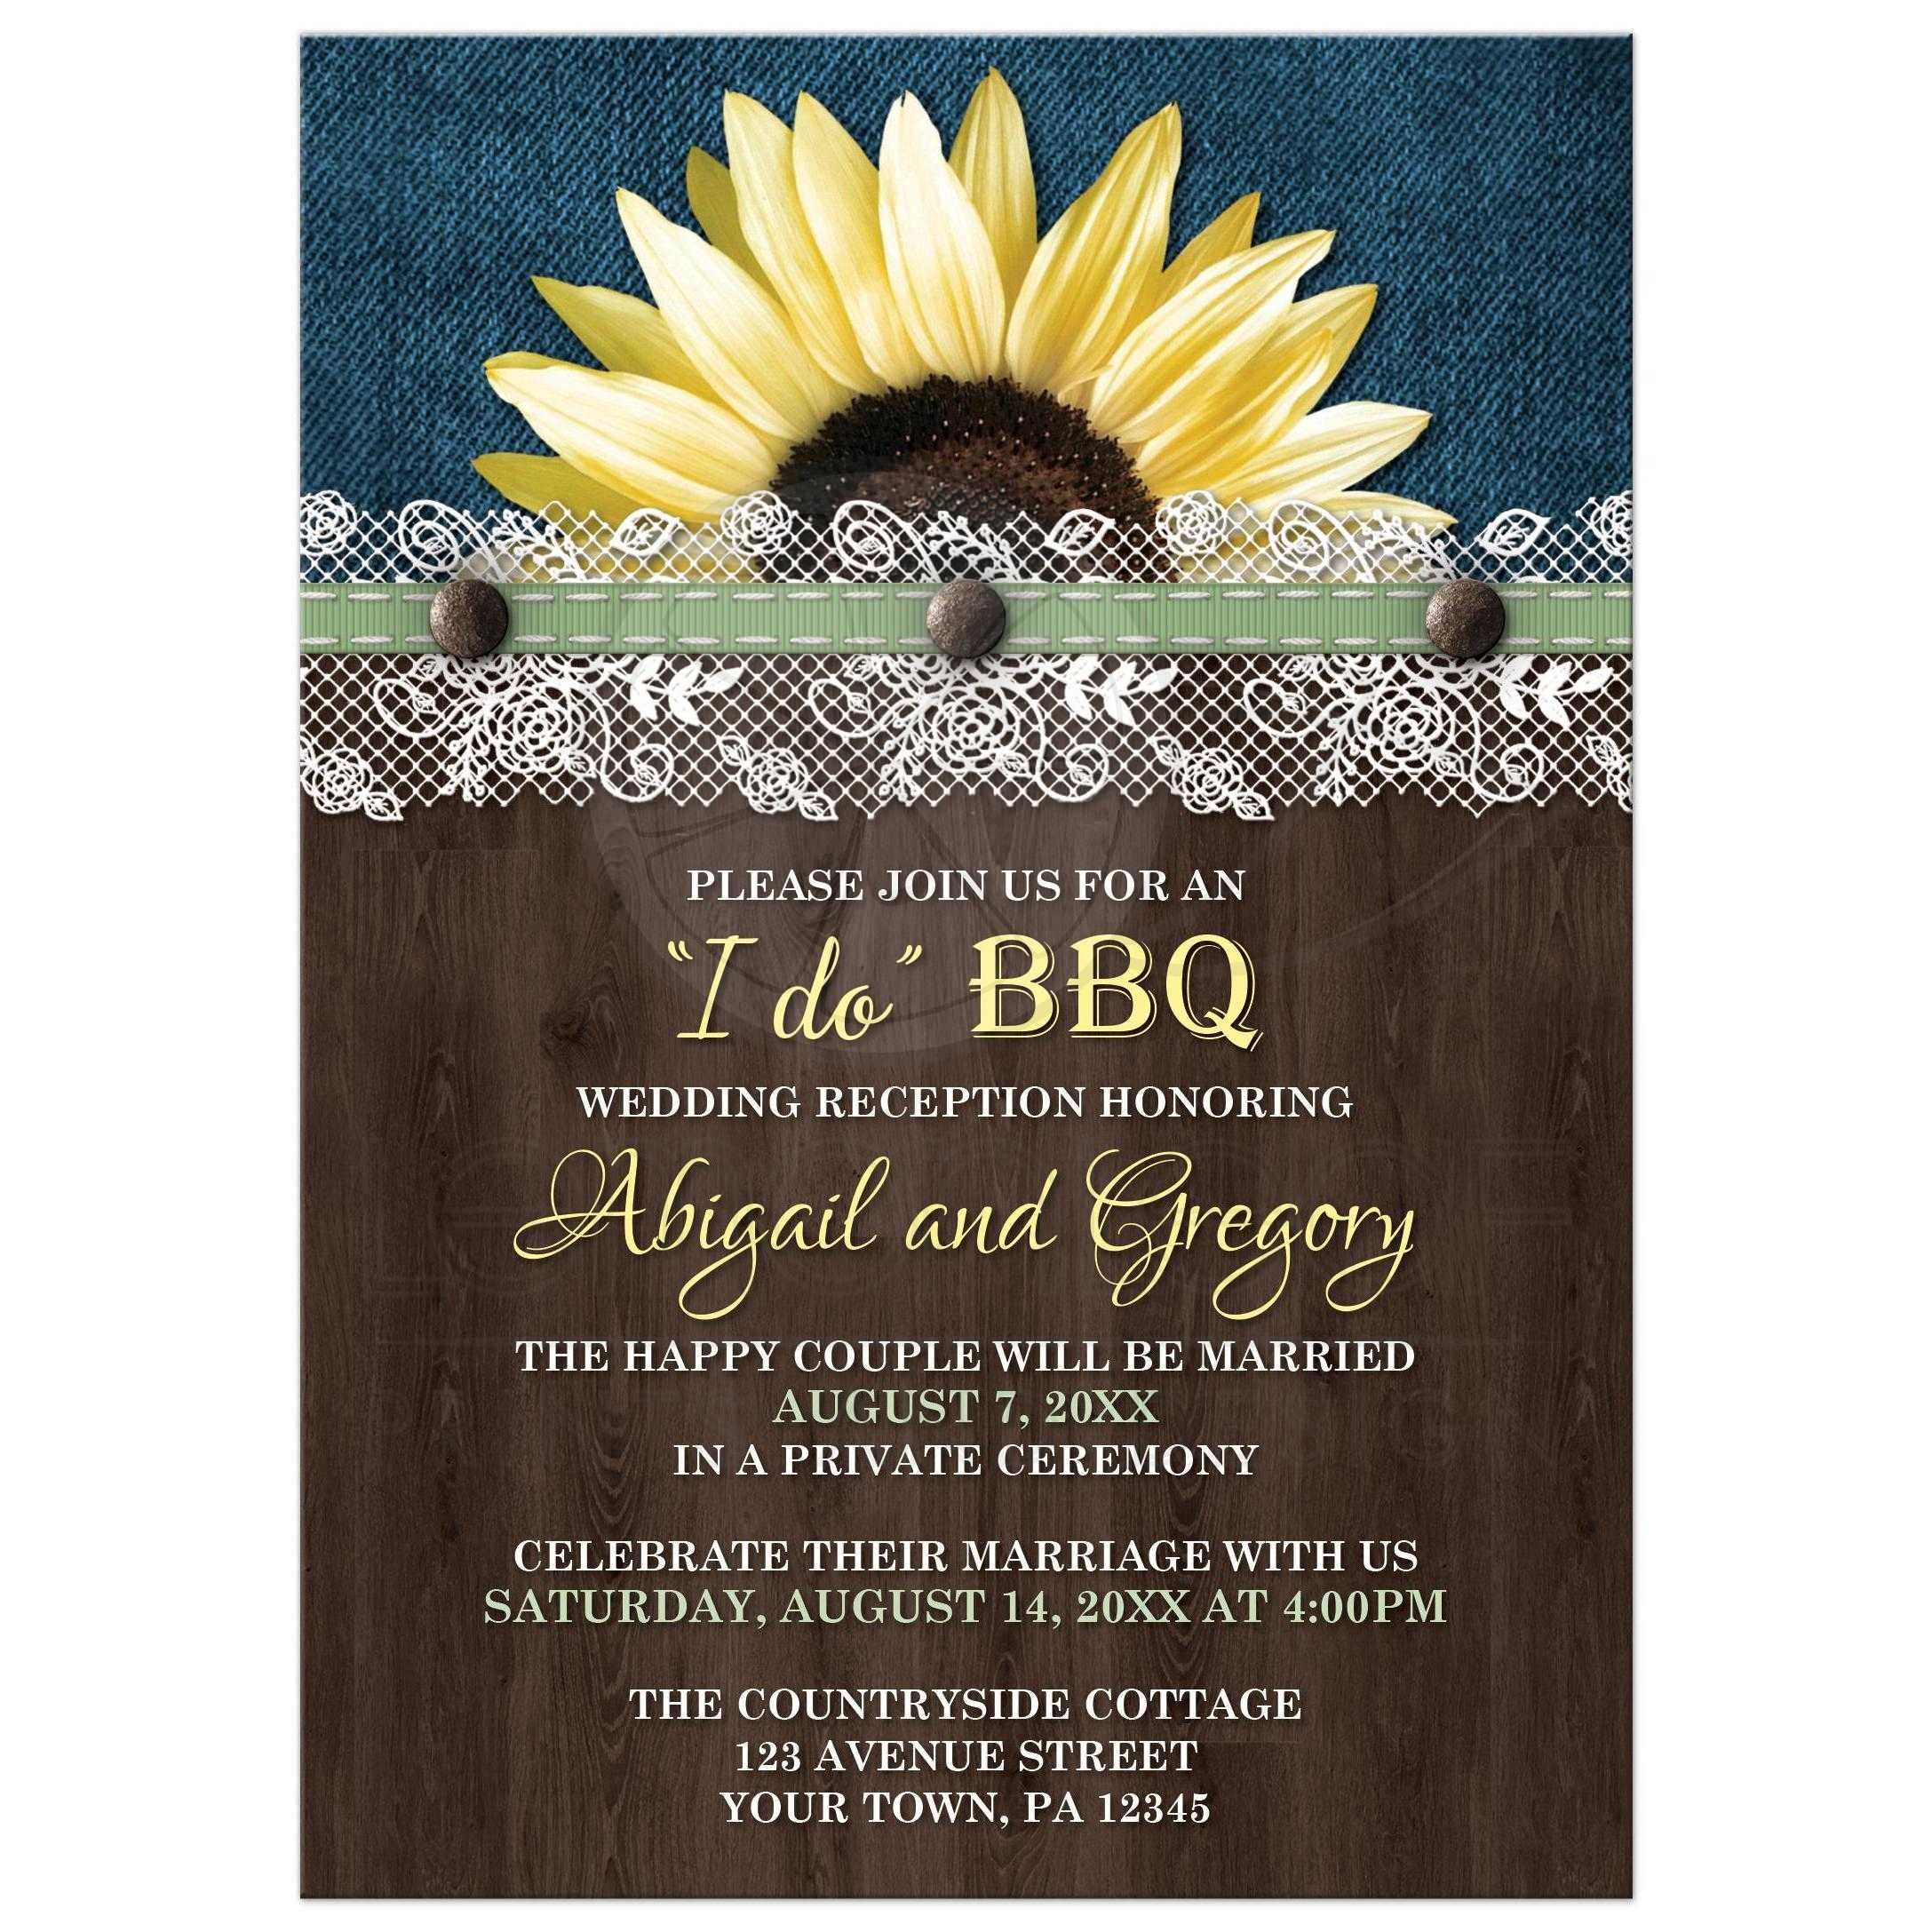 reception only wedding invitations Reception Only Invitations Sunflower Denim Wood Lace I Do BBQ